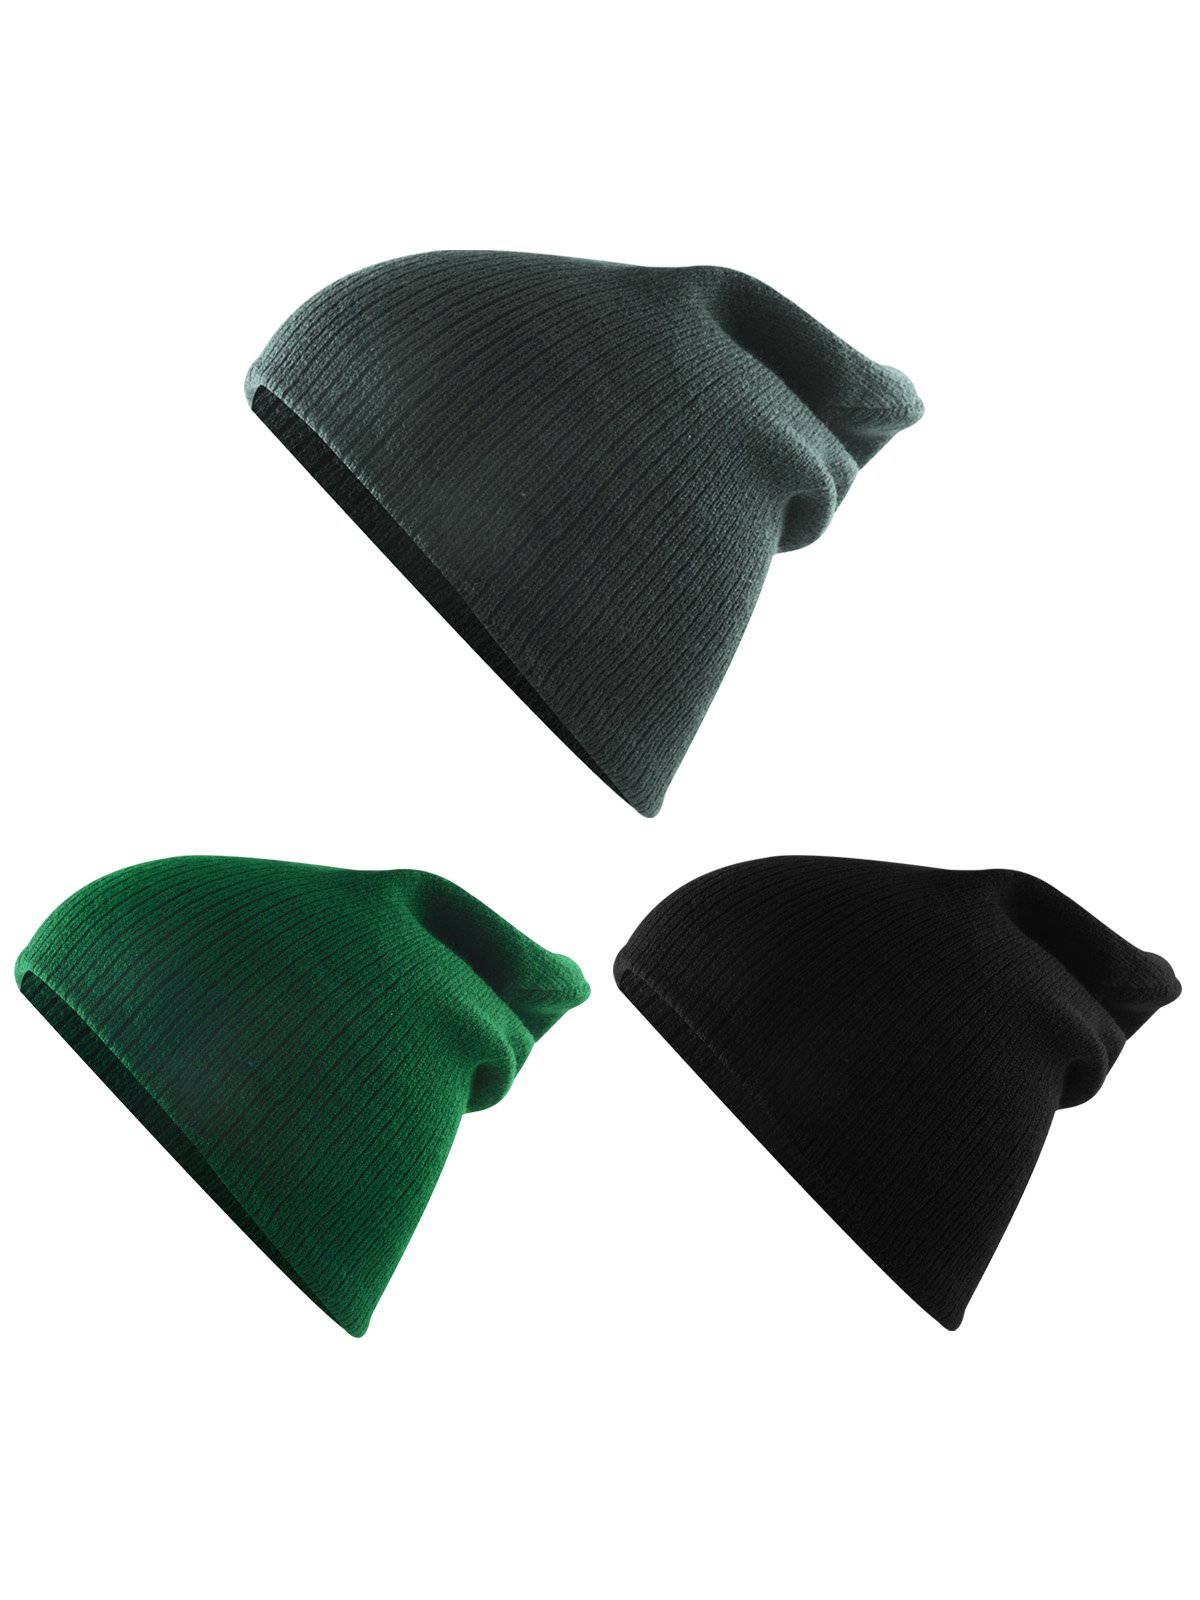 Century Star Kids Boys Girls Fashion Soft Slouchy Stretchy Baggy Hip-hop Slouchy Hat Children Basic Beanie 3 Pack-mix Color